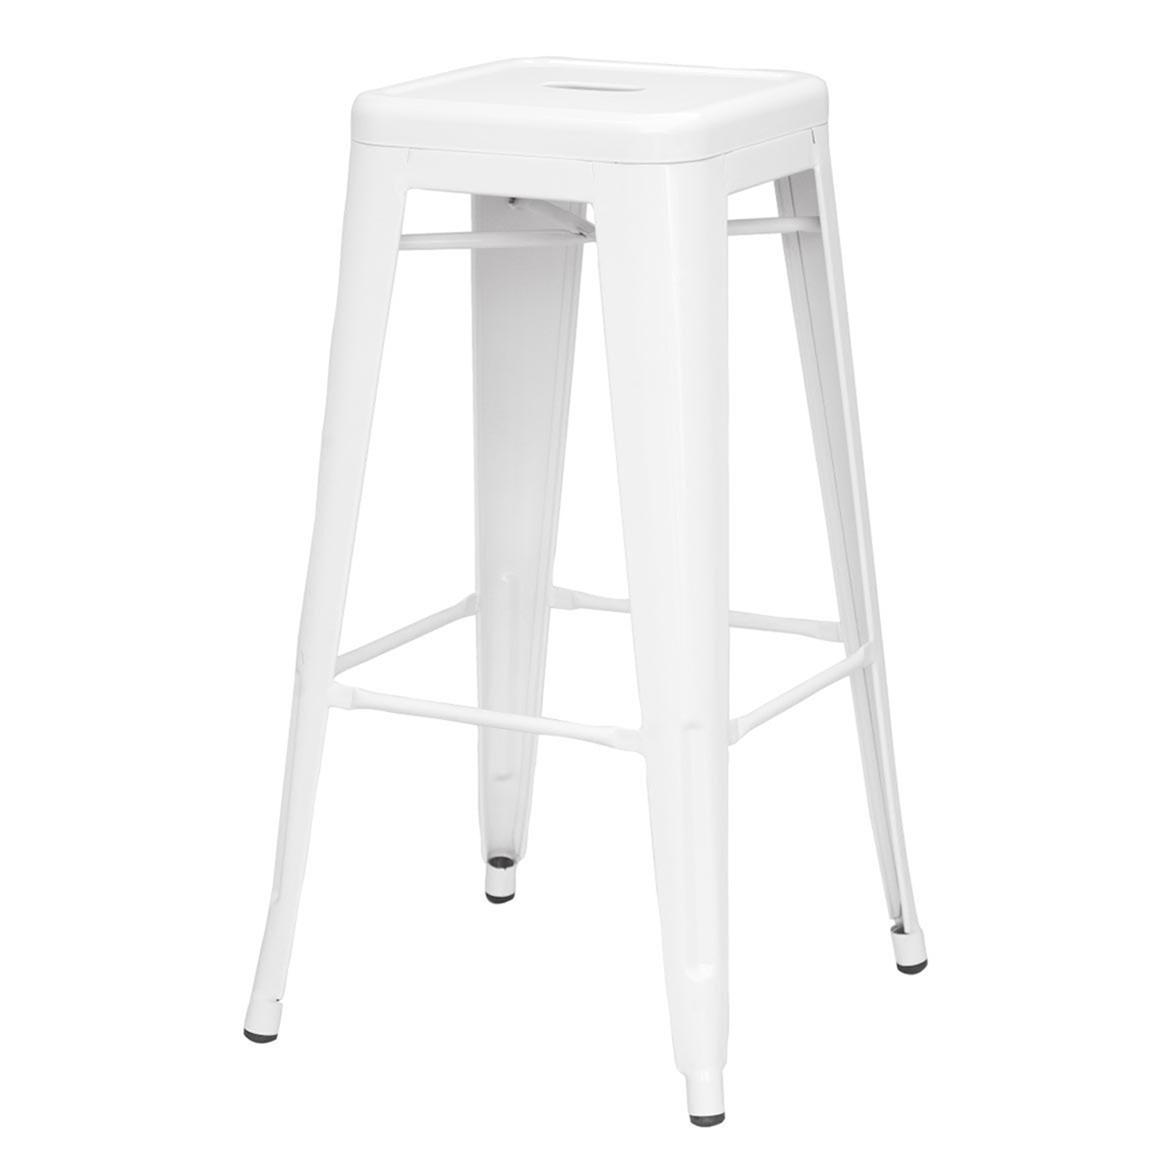 Astonishing Sovo Merah Metal Backless Bar Stool White Set Of 4 Andrewgaddart Wooden Chair Designs For Living Room Andrewgaddartcom